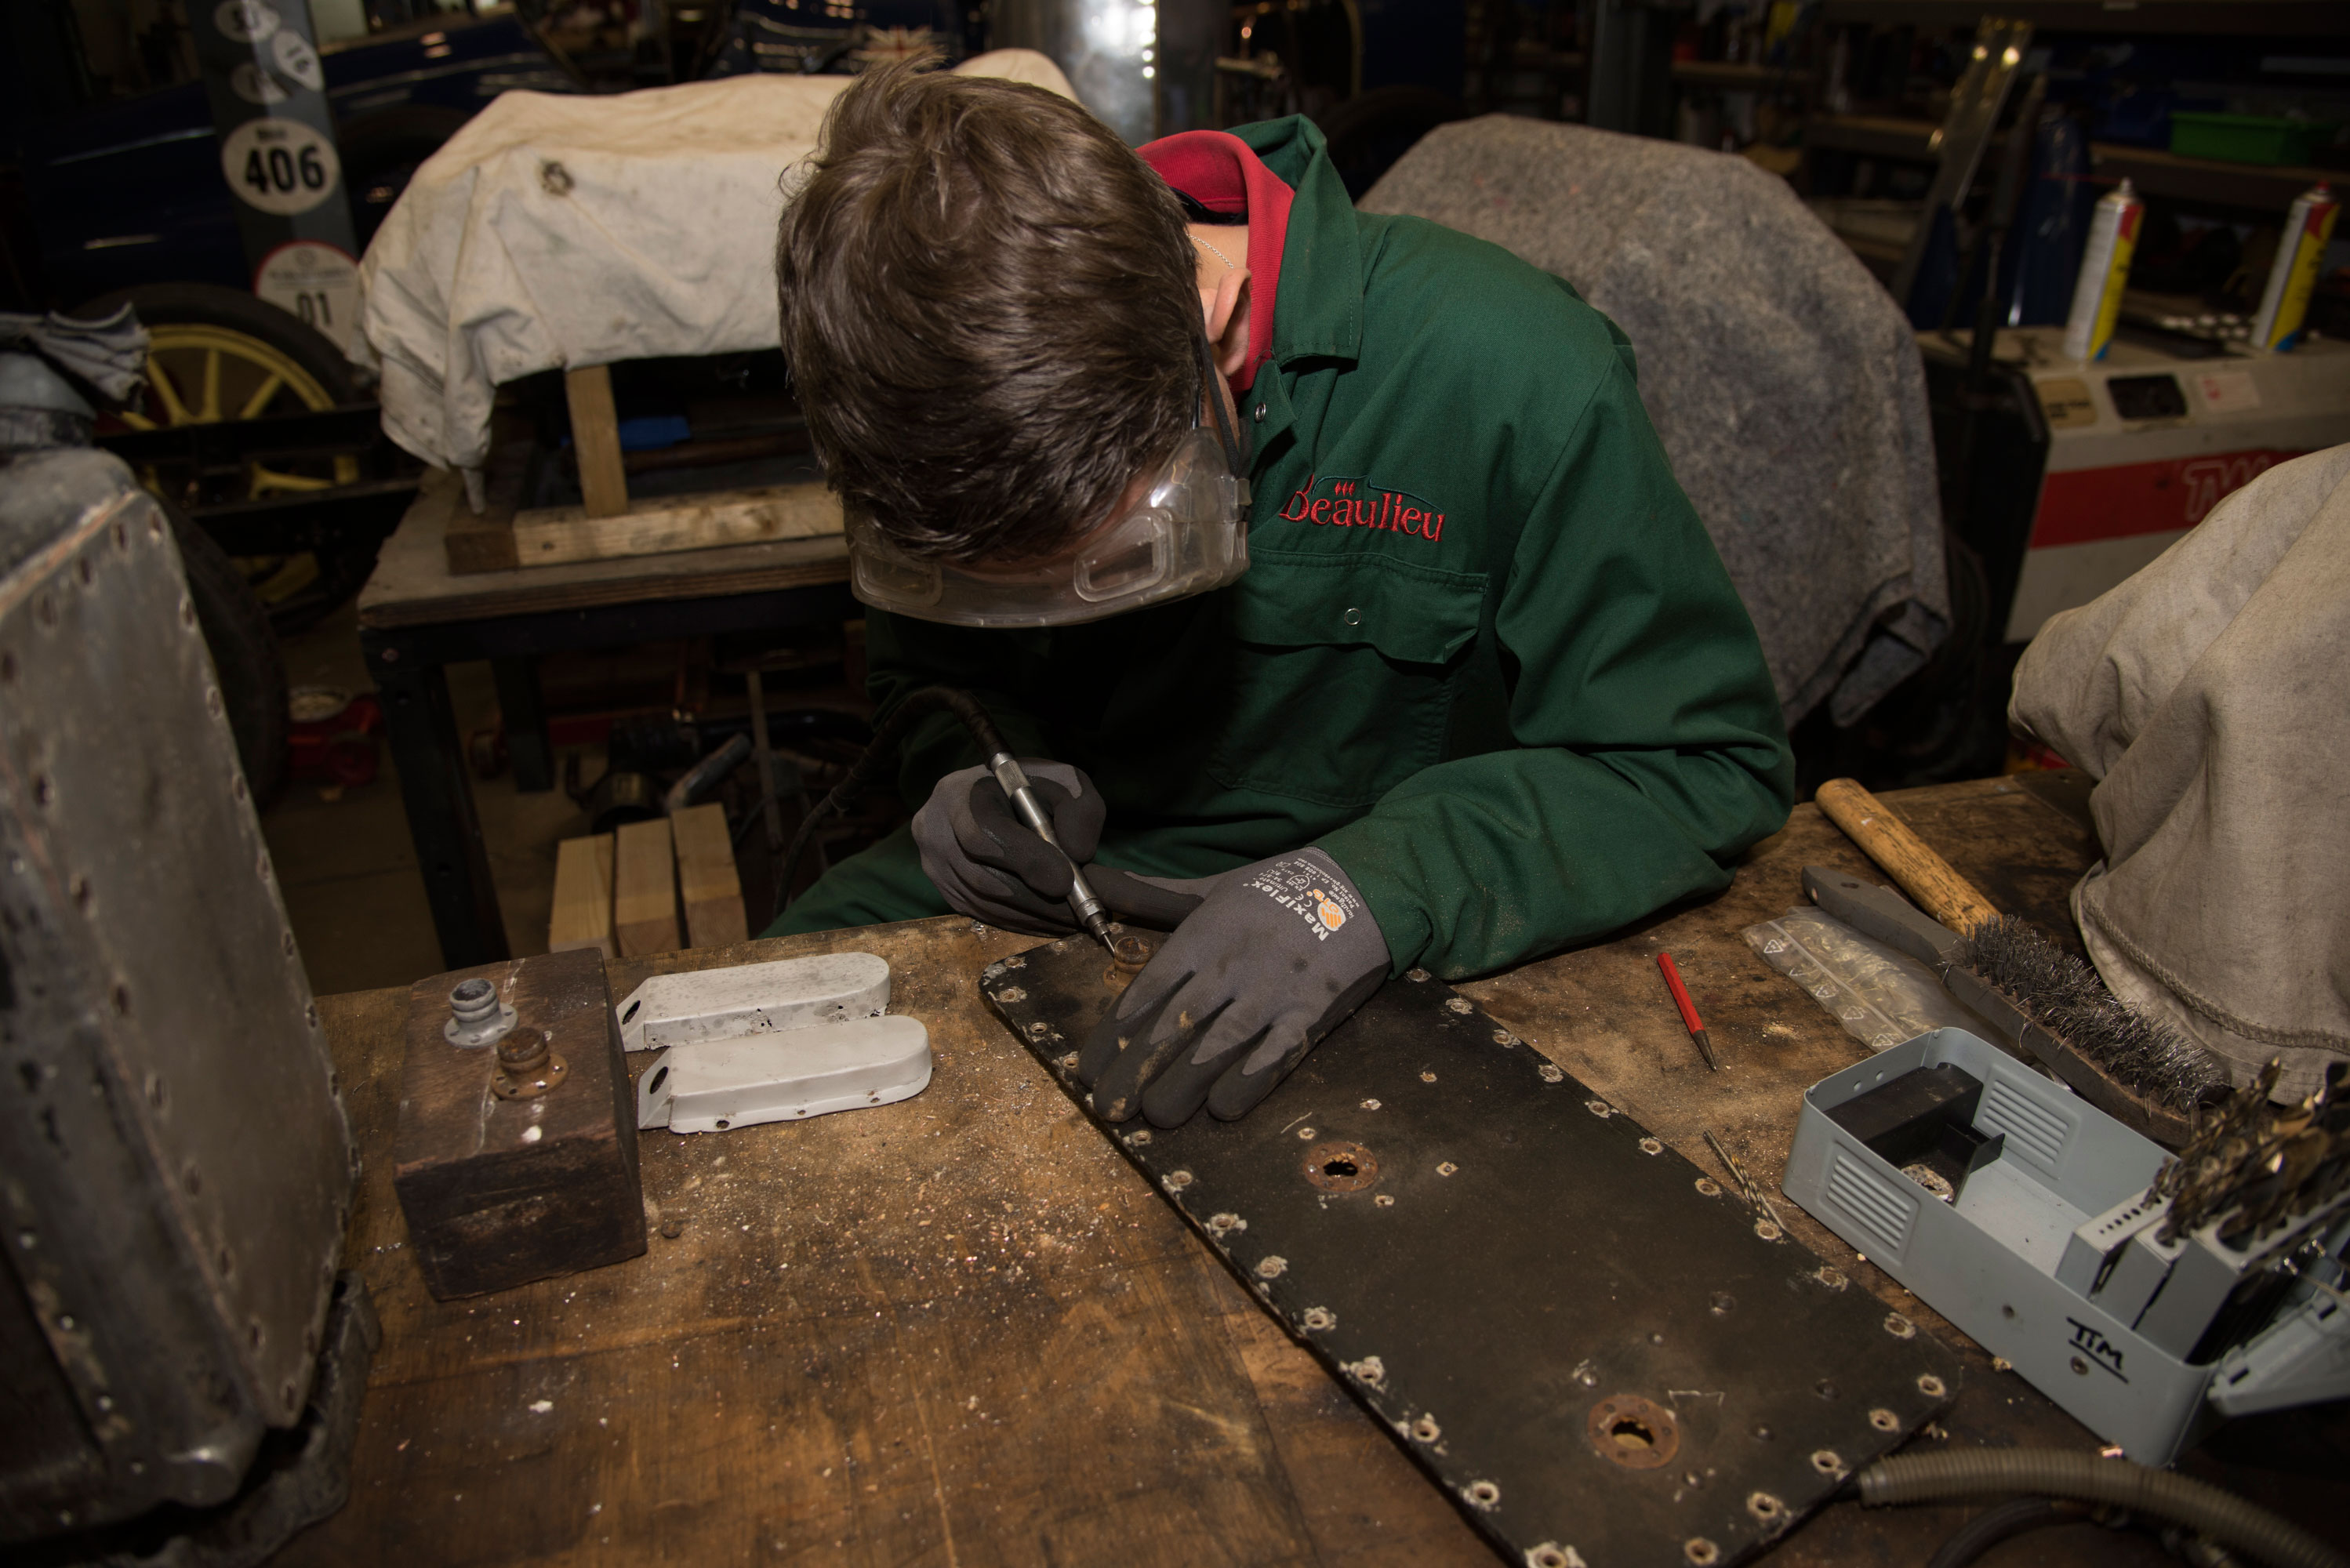 An engineer wearing Beaulieu overalls in a workshop repairing part of a historic vehicle